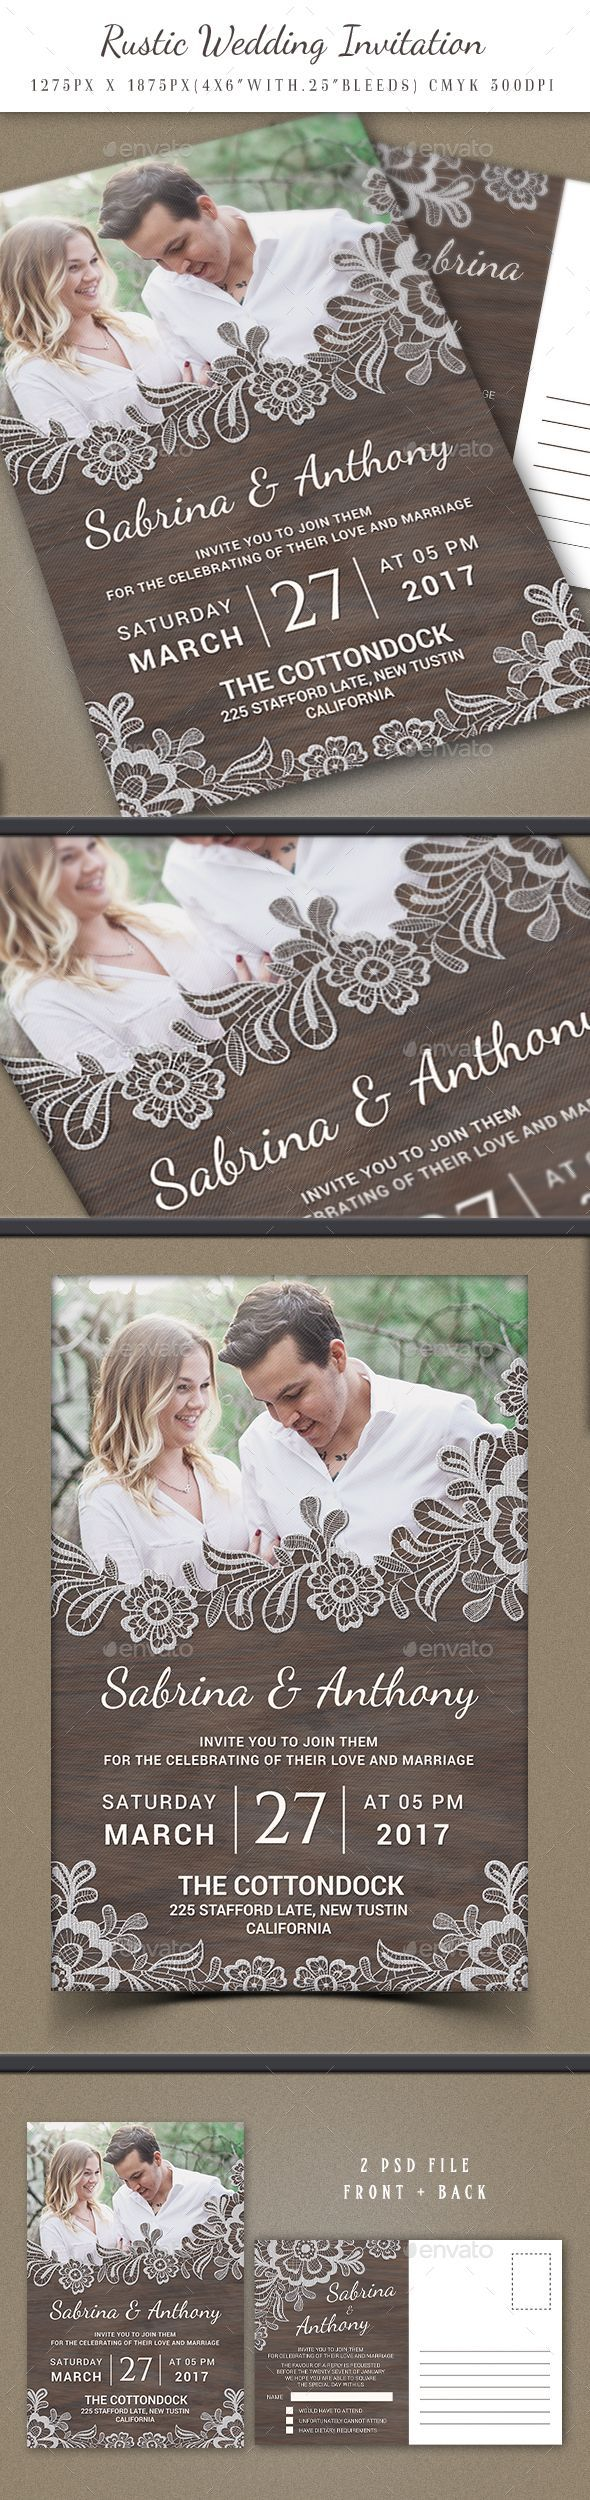 sunflower wedding invitations printable%0A Rustic Wedding Invitation by Goodgraph Rustic Wedding InvitationThe PSD  file is setup at     px x     px